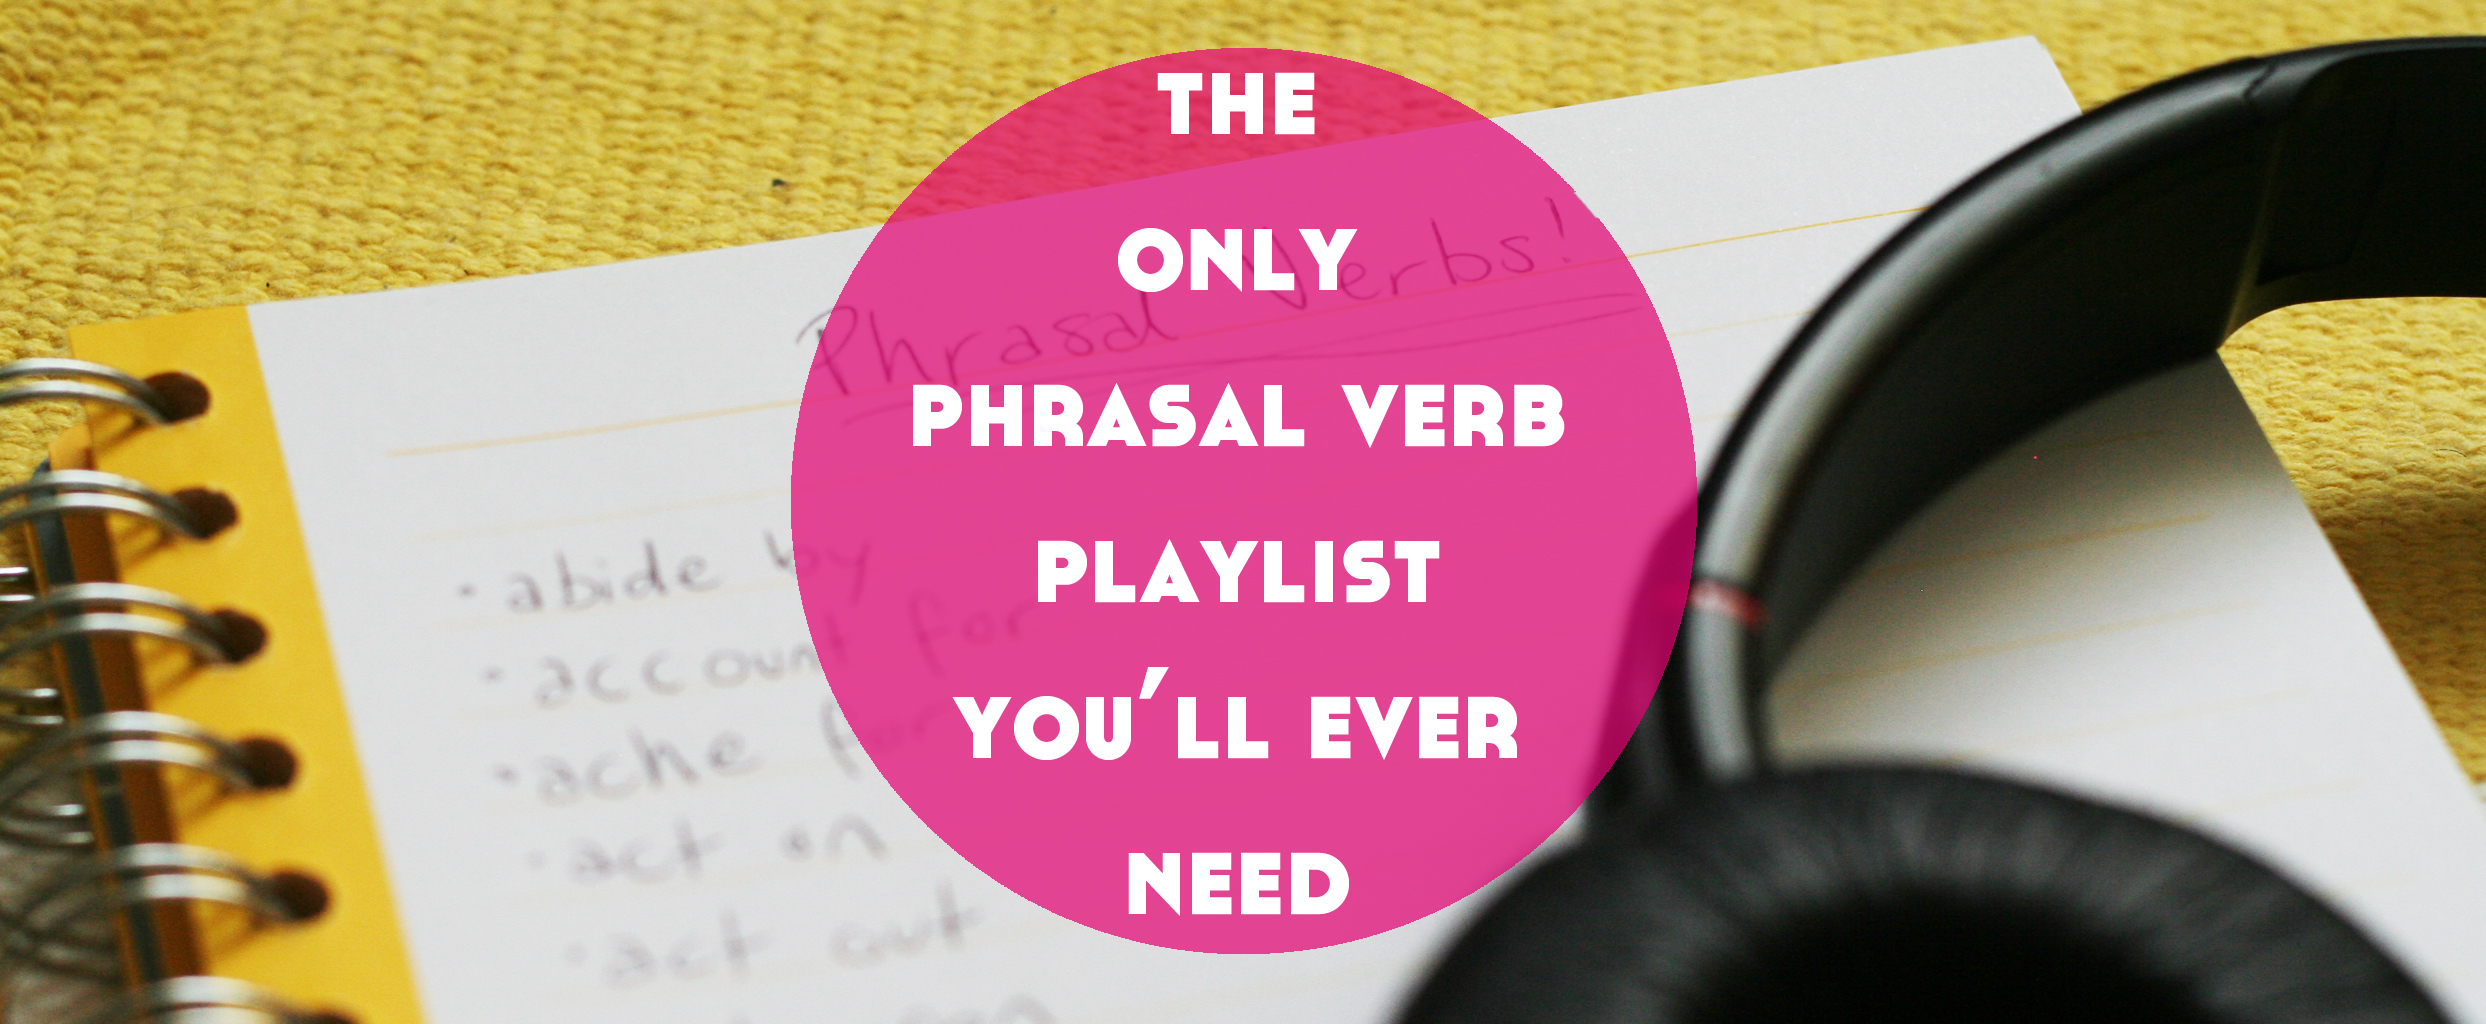 The Only English Phrasal Verbs Playlist You'll Ever Need - Lindsay